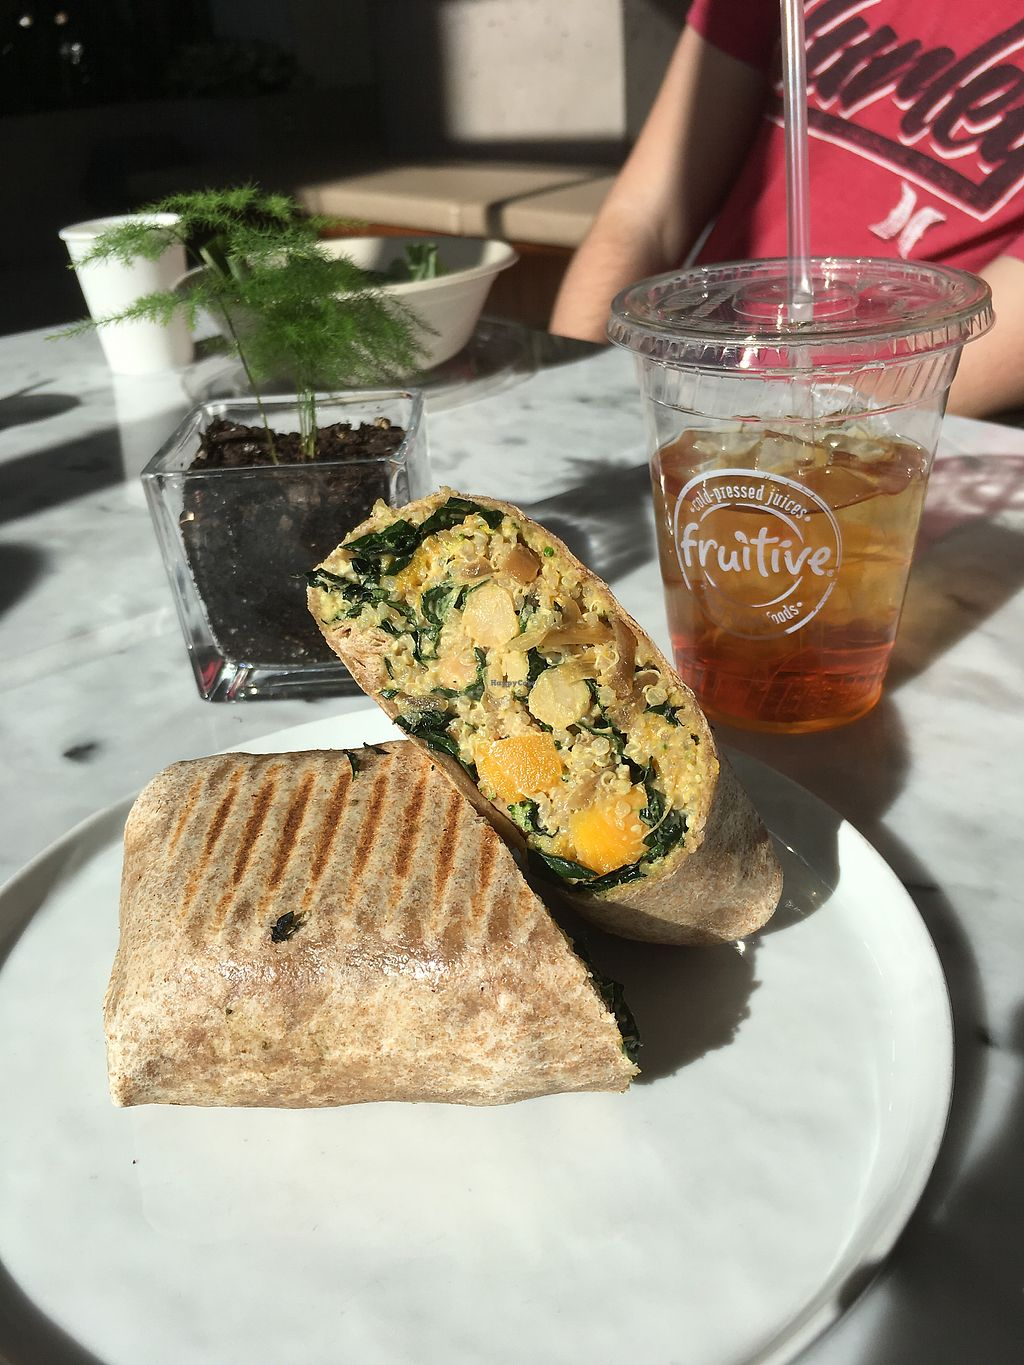 """Photo of Fruitive  by <a href=""""/members/profile/Beshnay"""">Beshnay</a> <br/>the Tuscan kale wrap. ? <br/> January 21, 2018  - <a href='/contact/abuse/image/32512/349106'>Report</a>"""